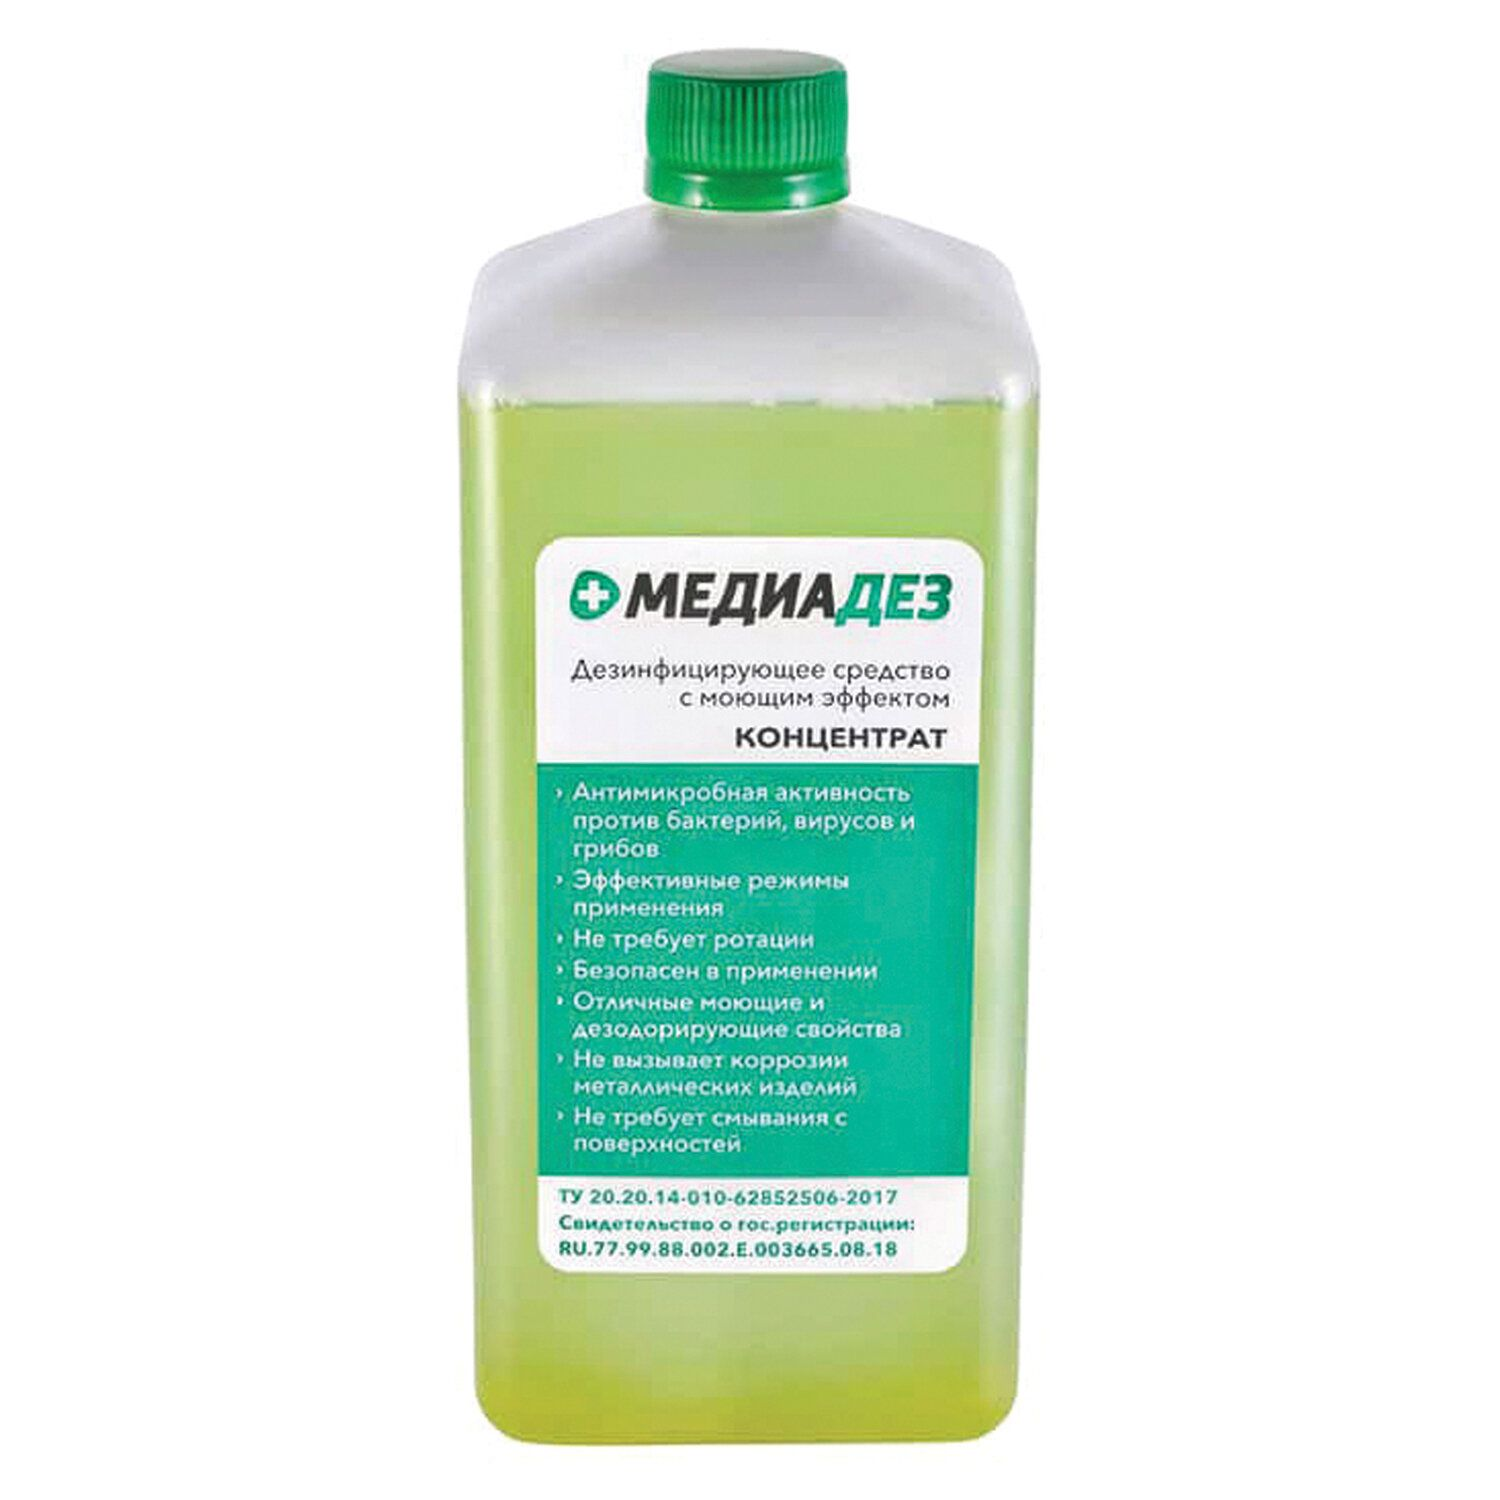 MEDIADEZ / Disinfectant 1 l concentrate, lid